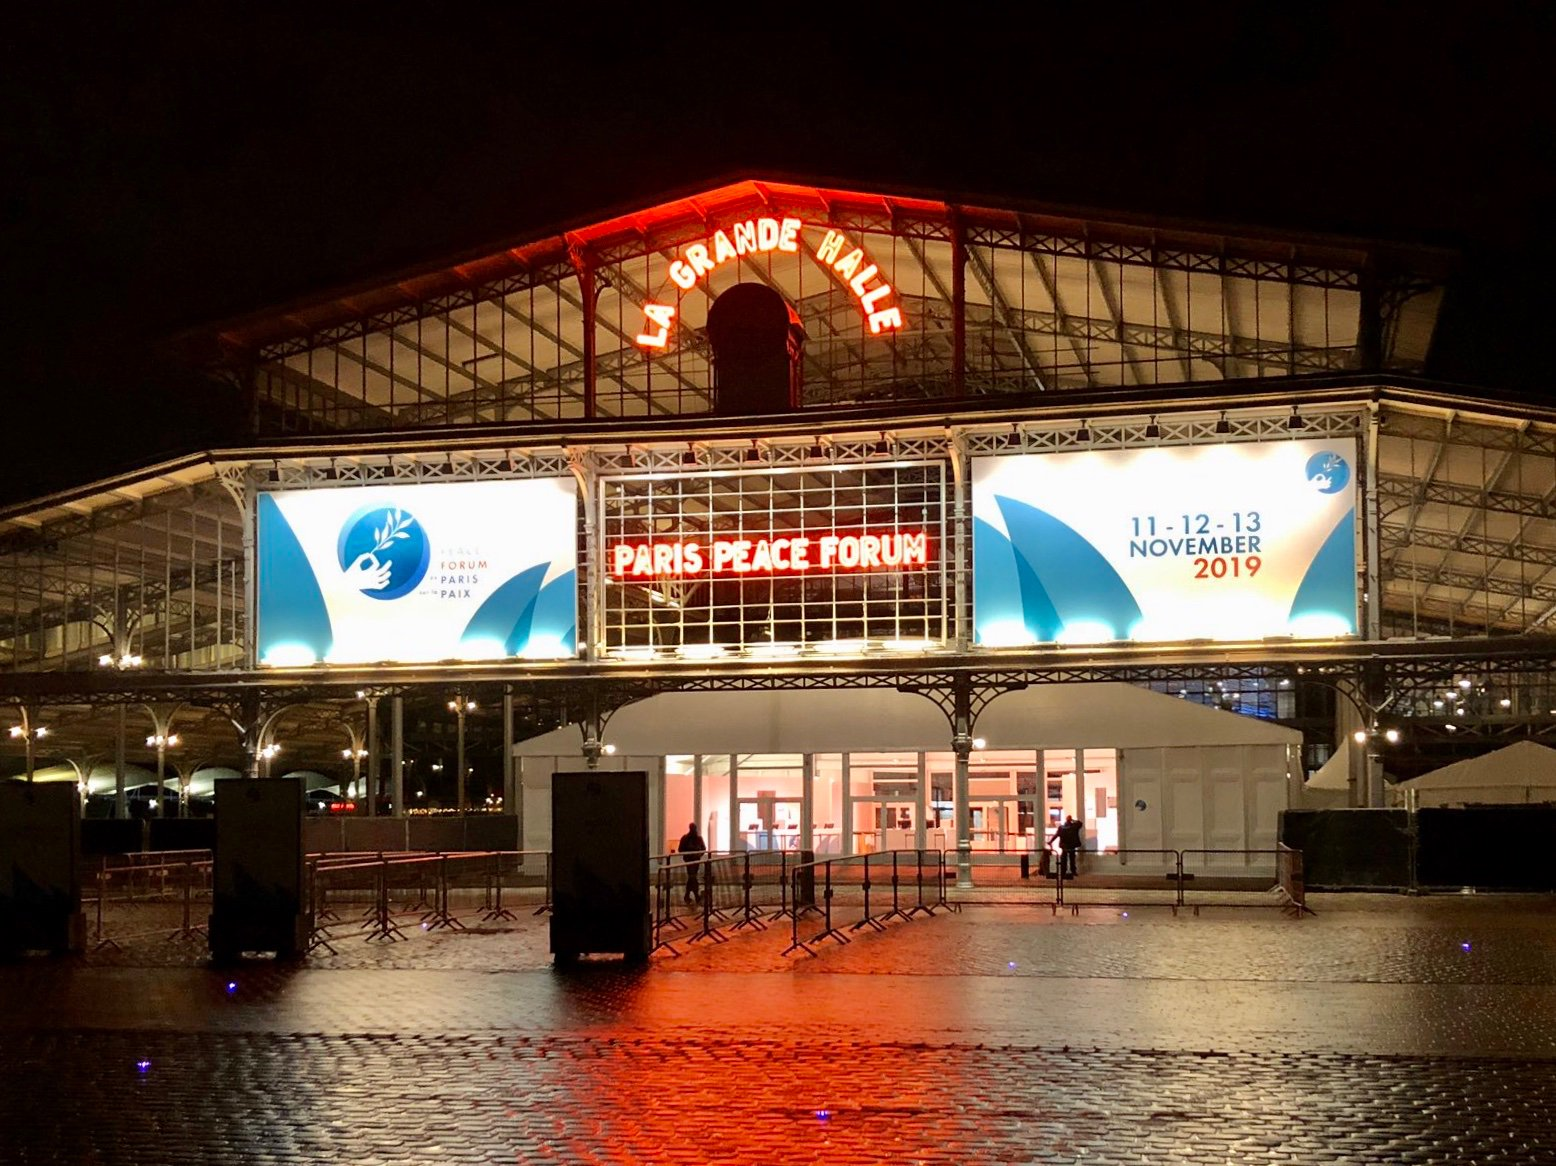 Paris Peace Forum - La Grande Halle, Paris